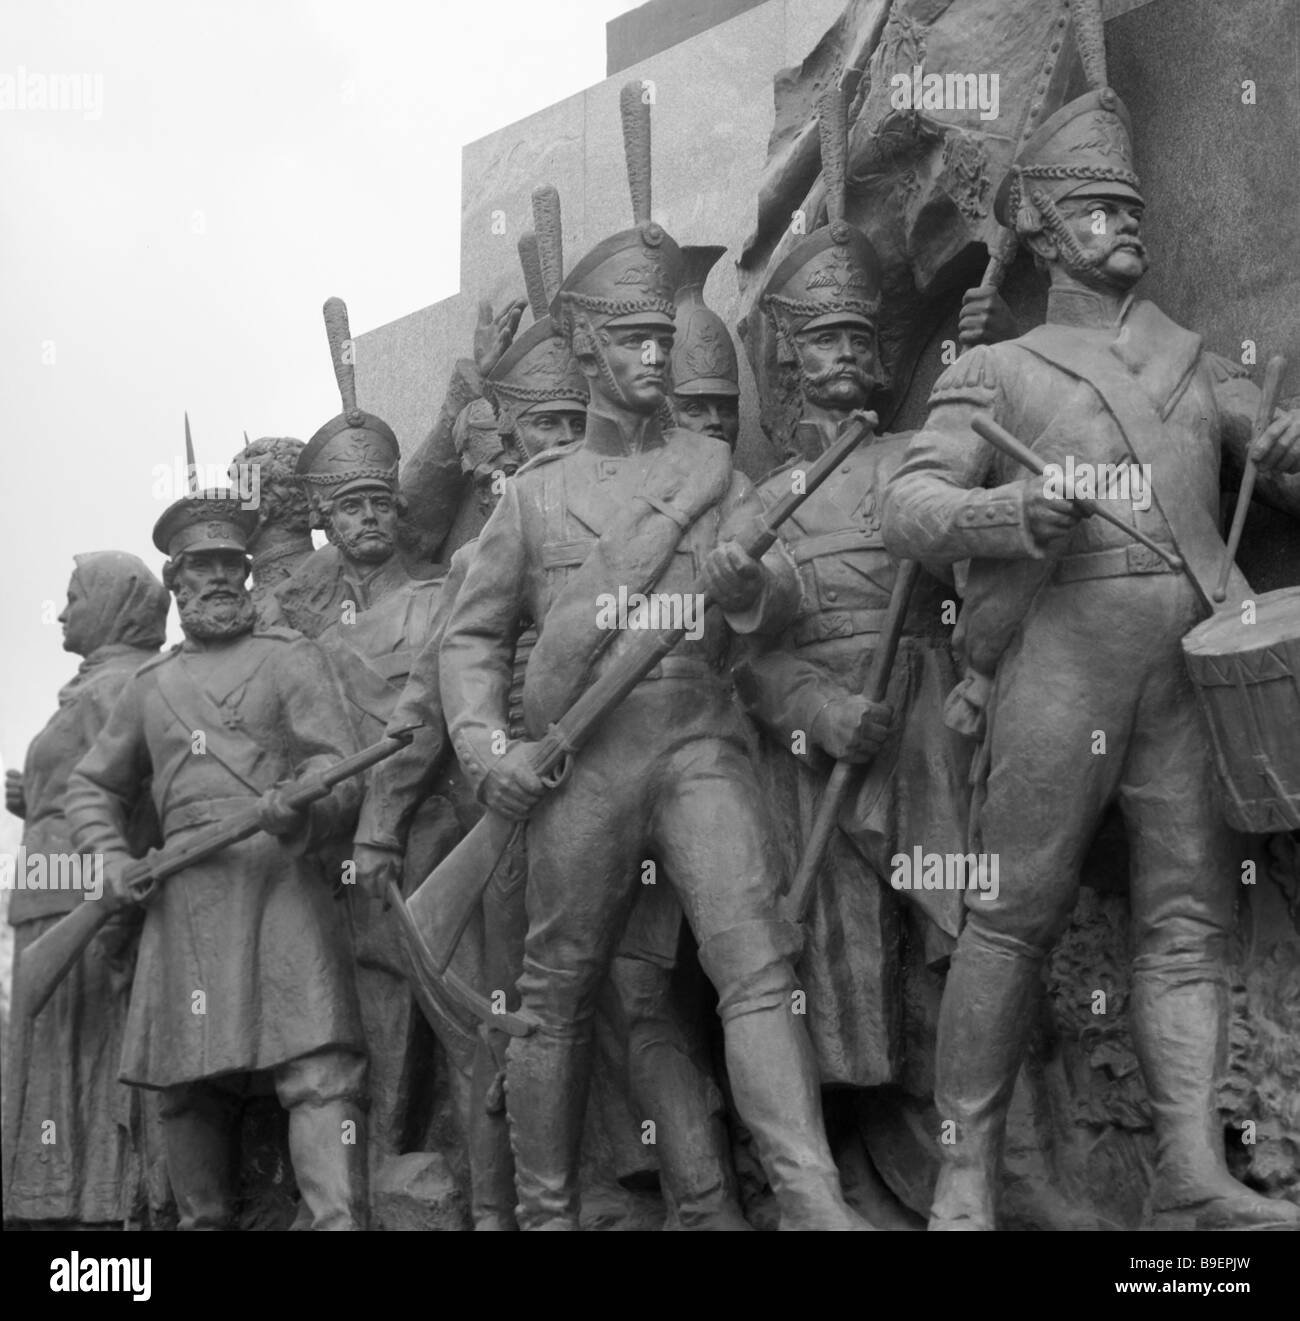 Sculptural composition featuring soldiers and partisans participants in the 1812 war on the pedestal of the monument - Stock Image